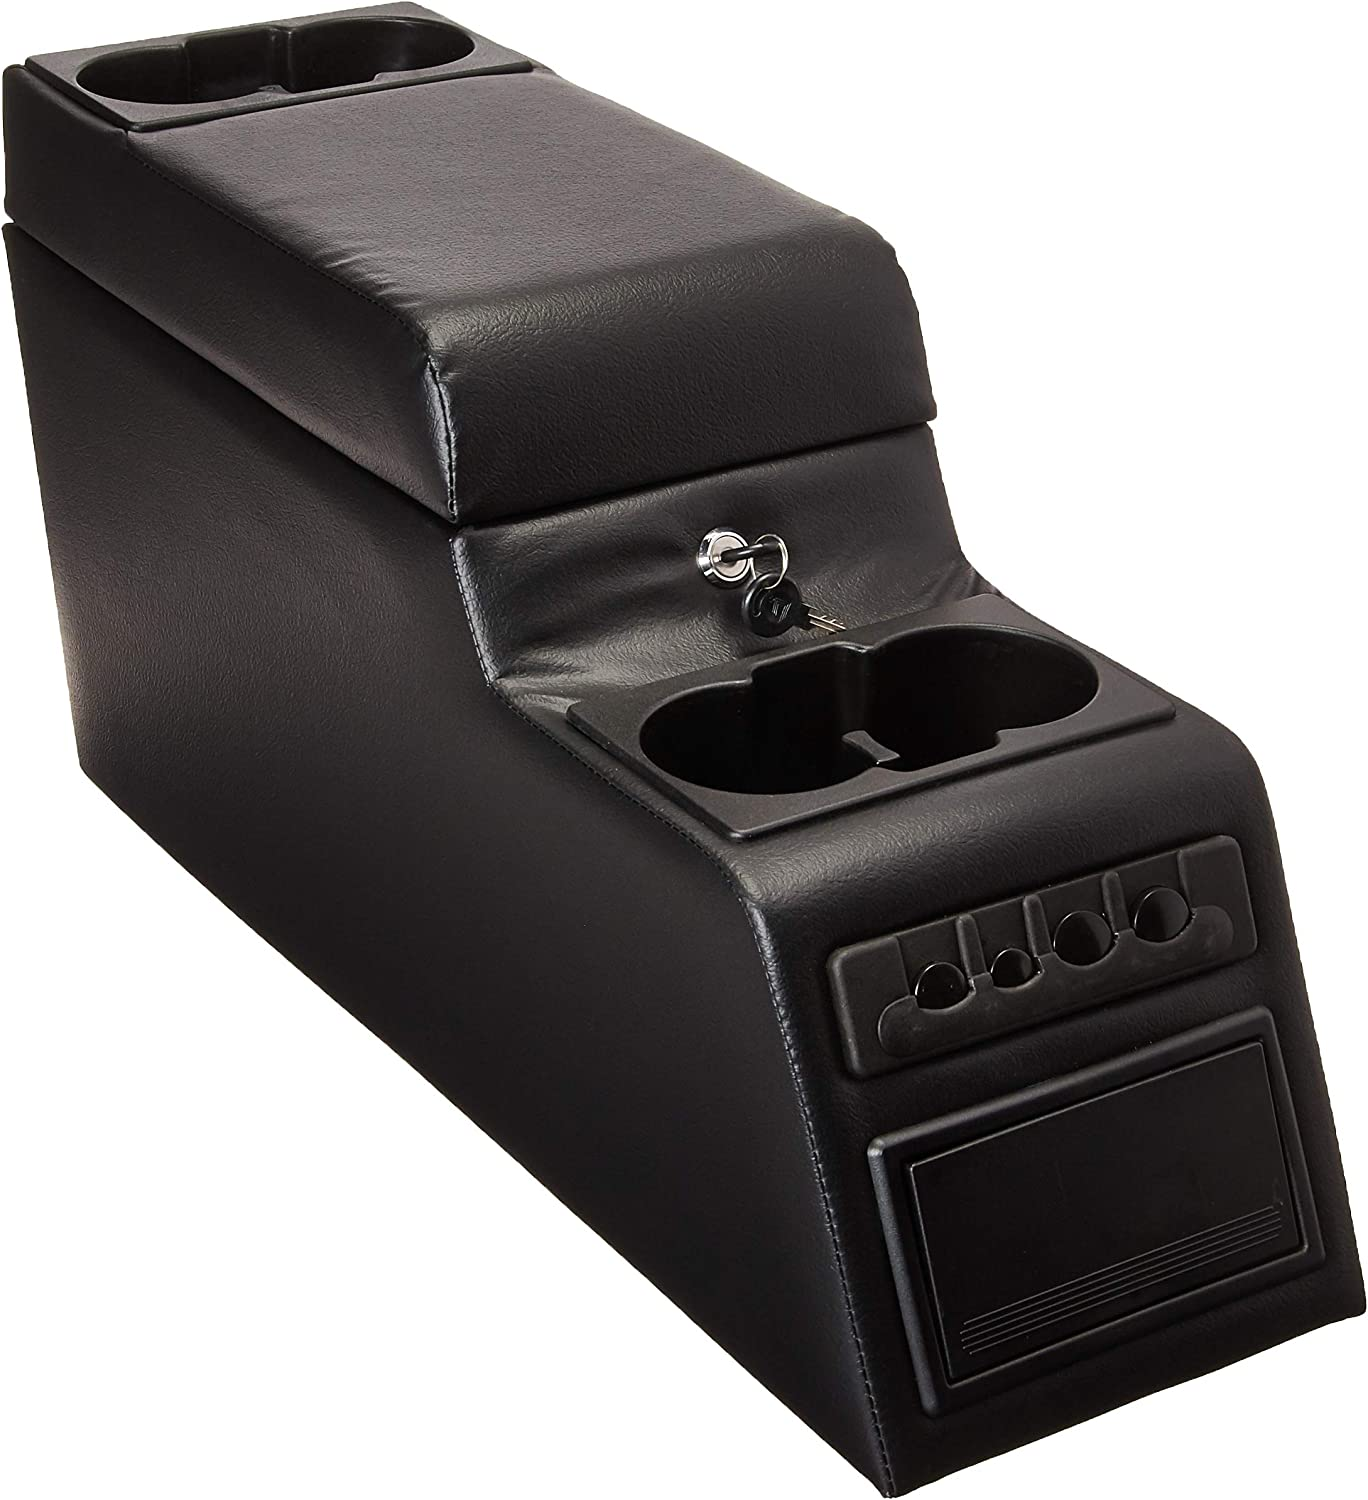 VDP 31515 Black Locking Central Console